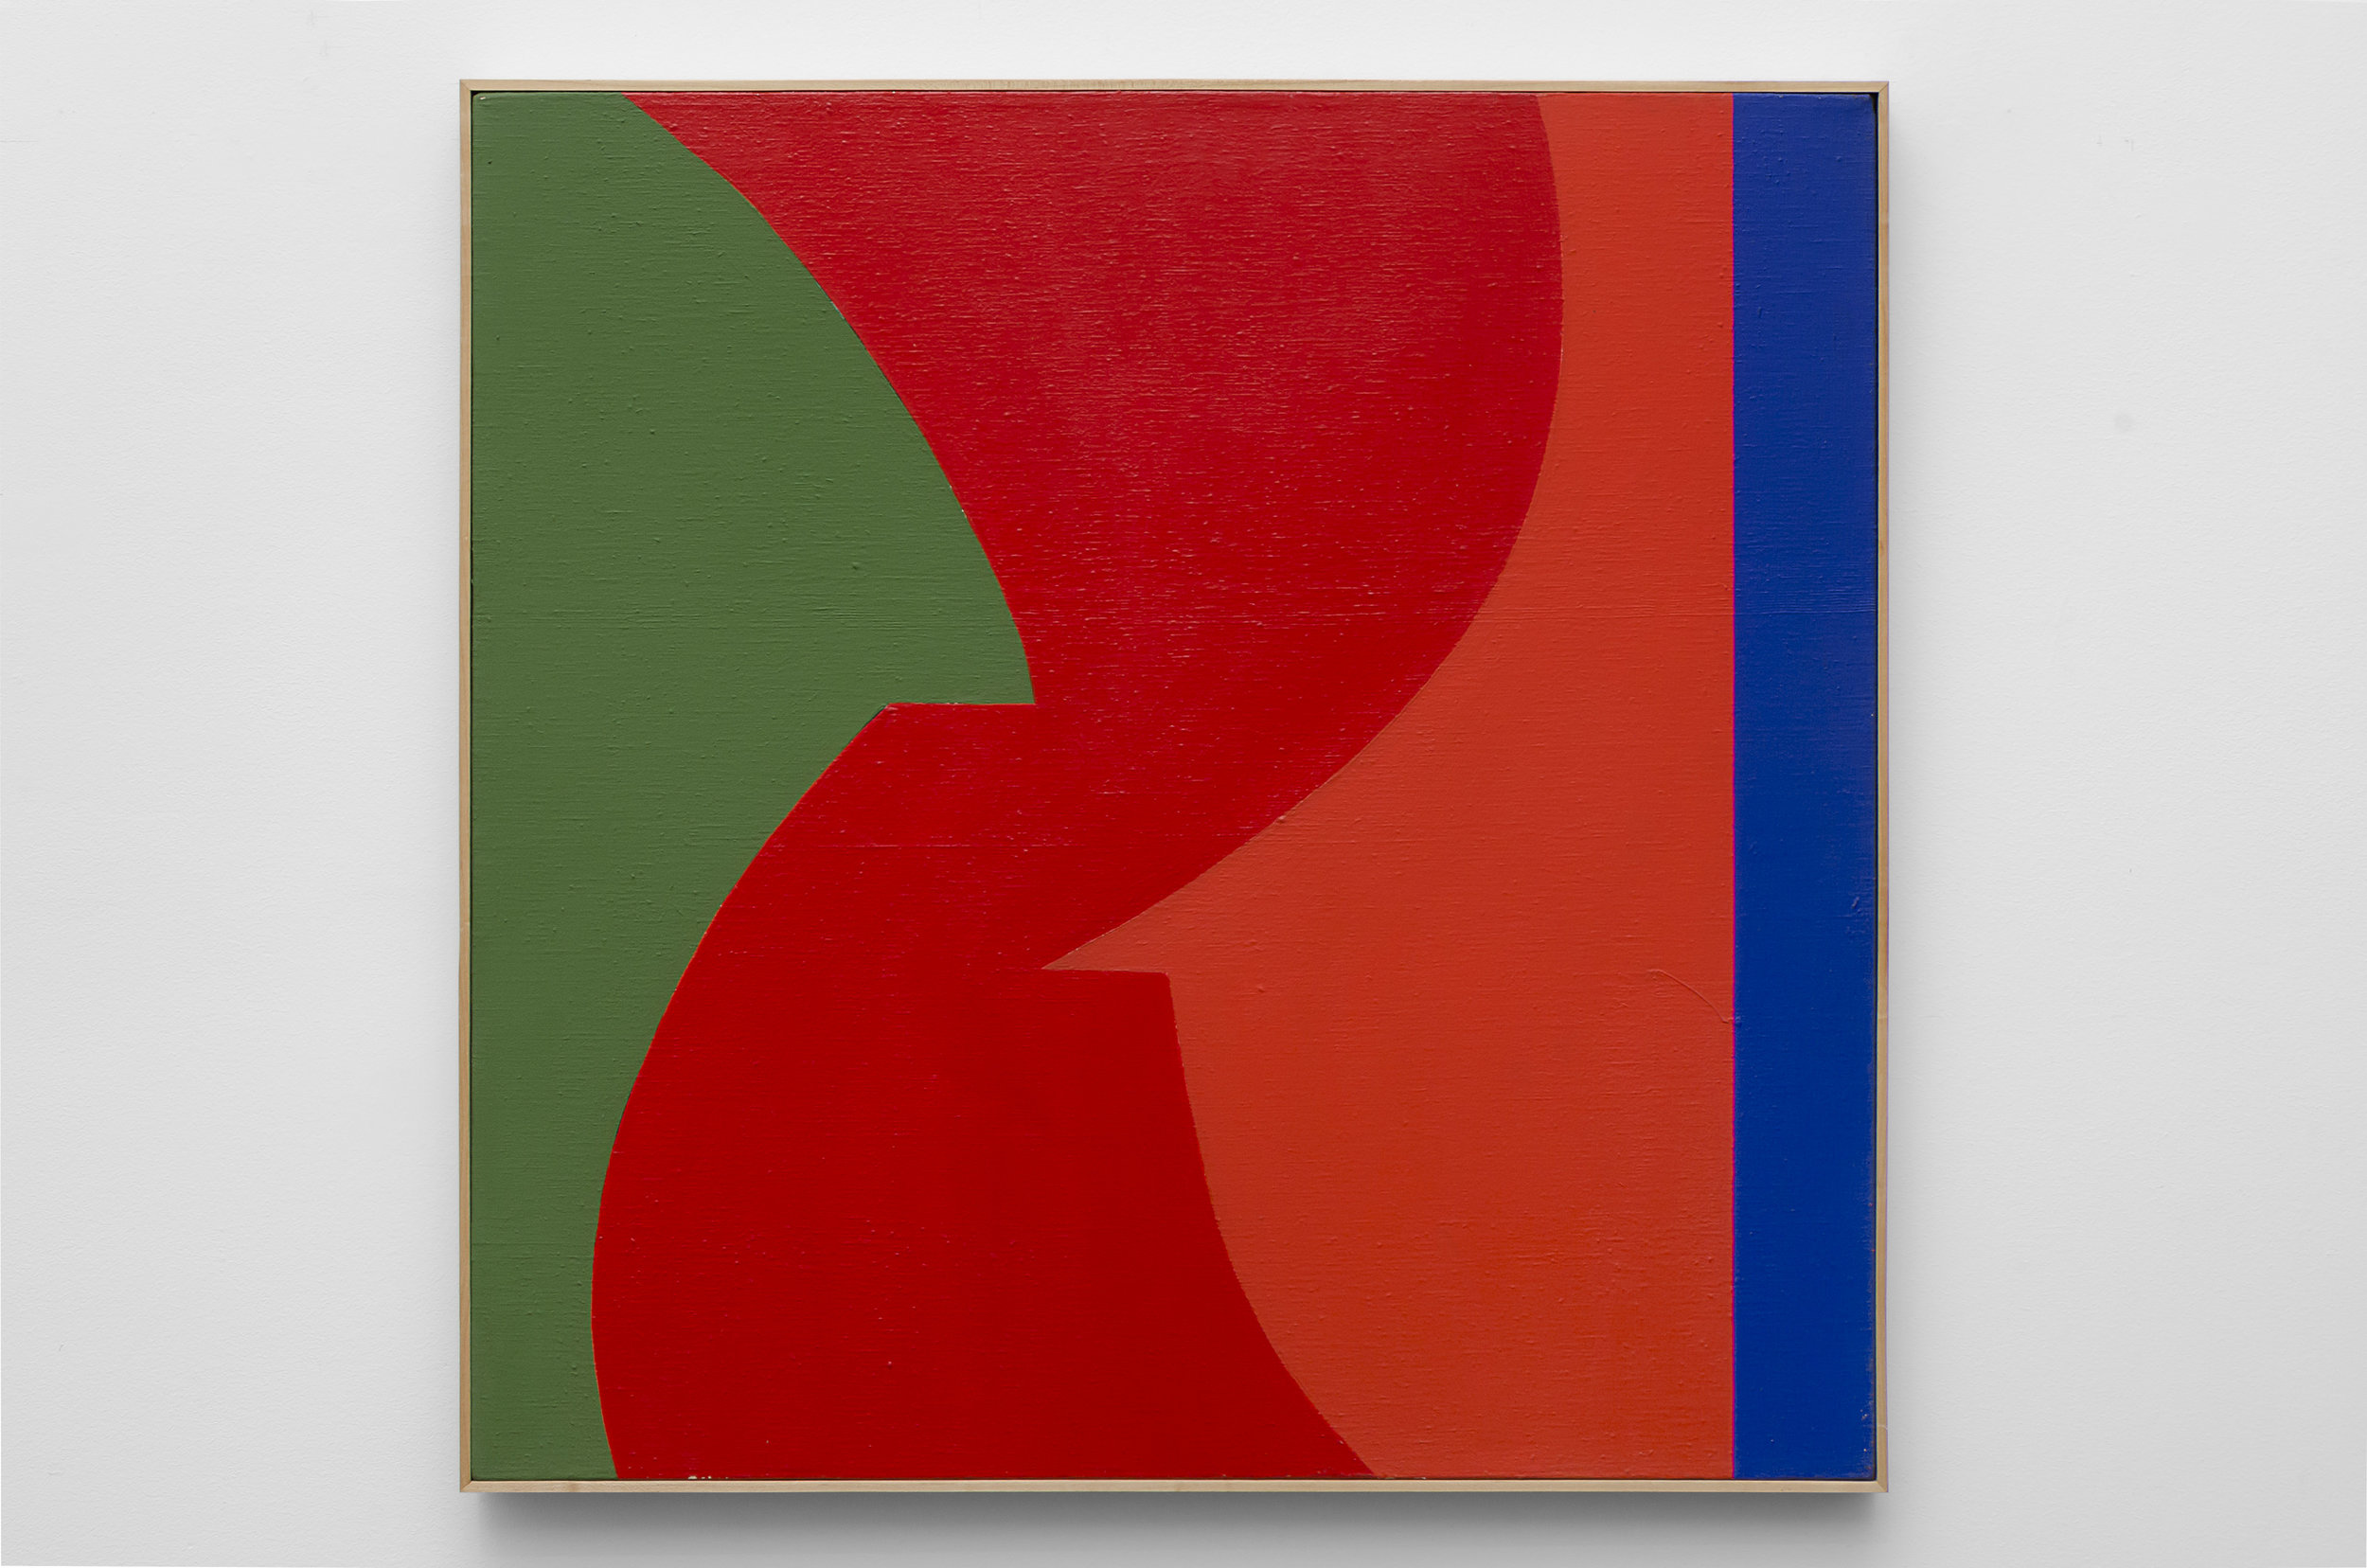 Untitled (D)   c. 1967  acrylic on canvas  30 x 30 inches, 76.2 x 76.2 centimeters